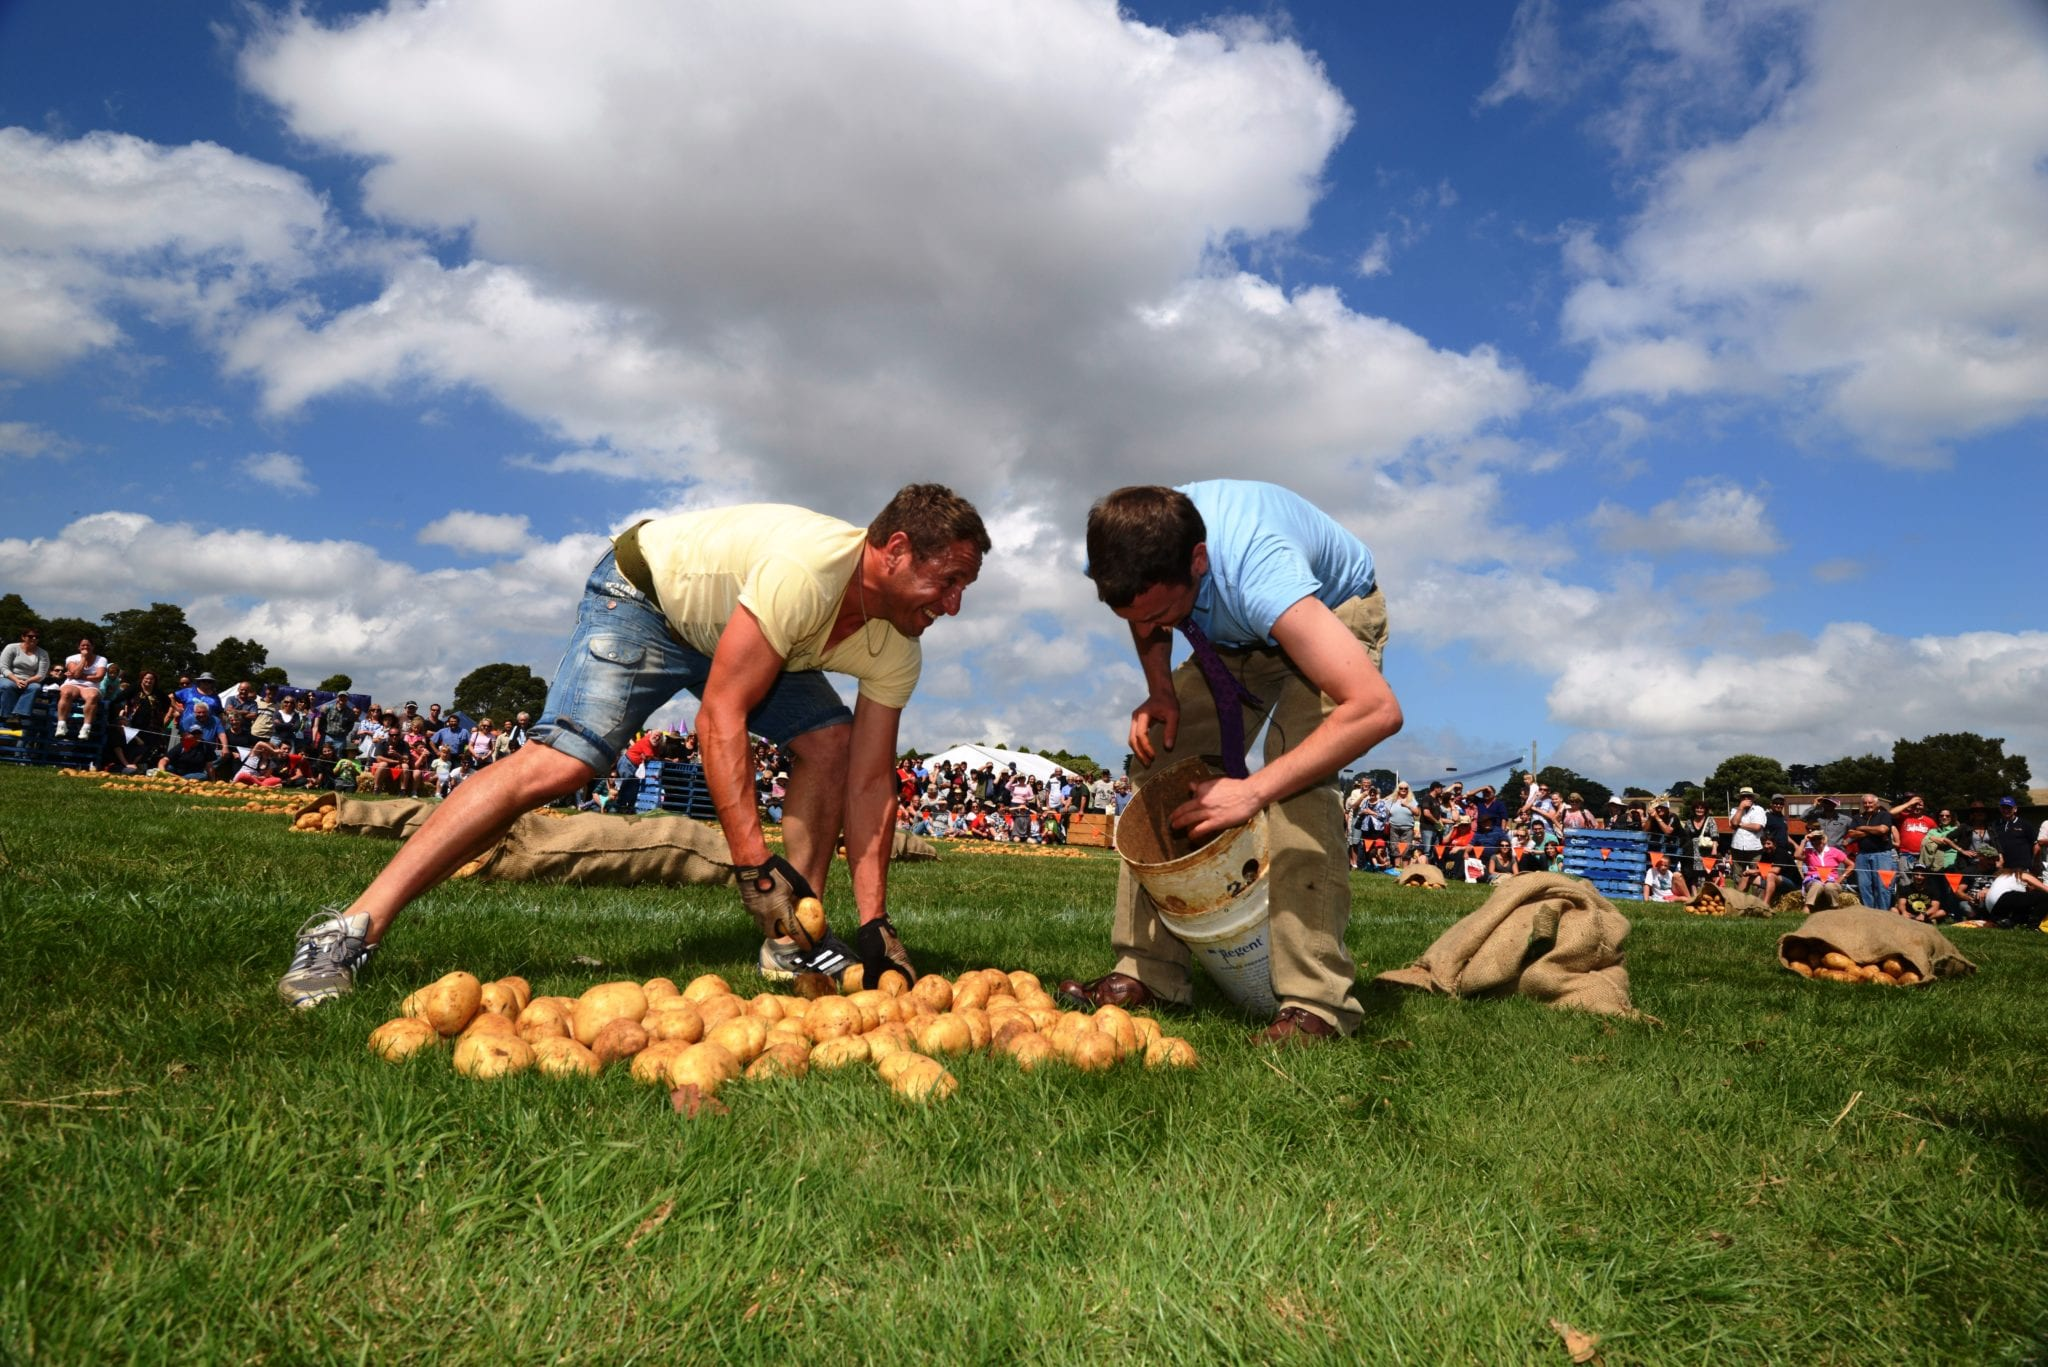 Potato Festival in Gippsland supported by Mirboo North Community Foundation